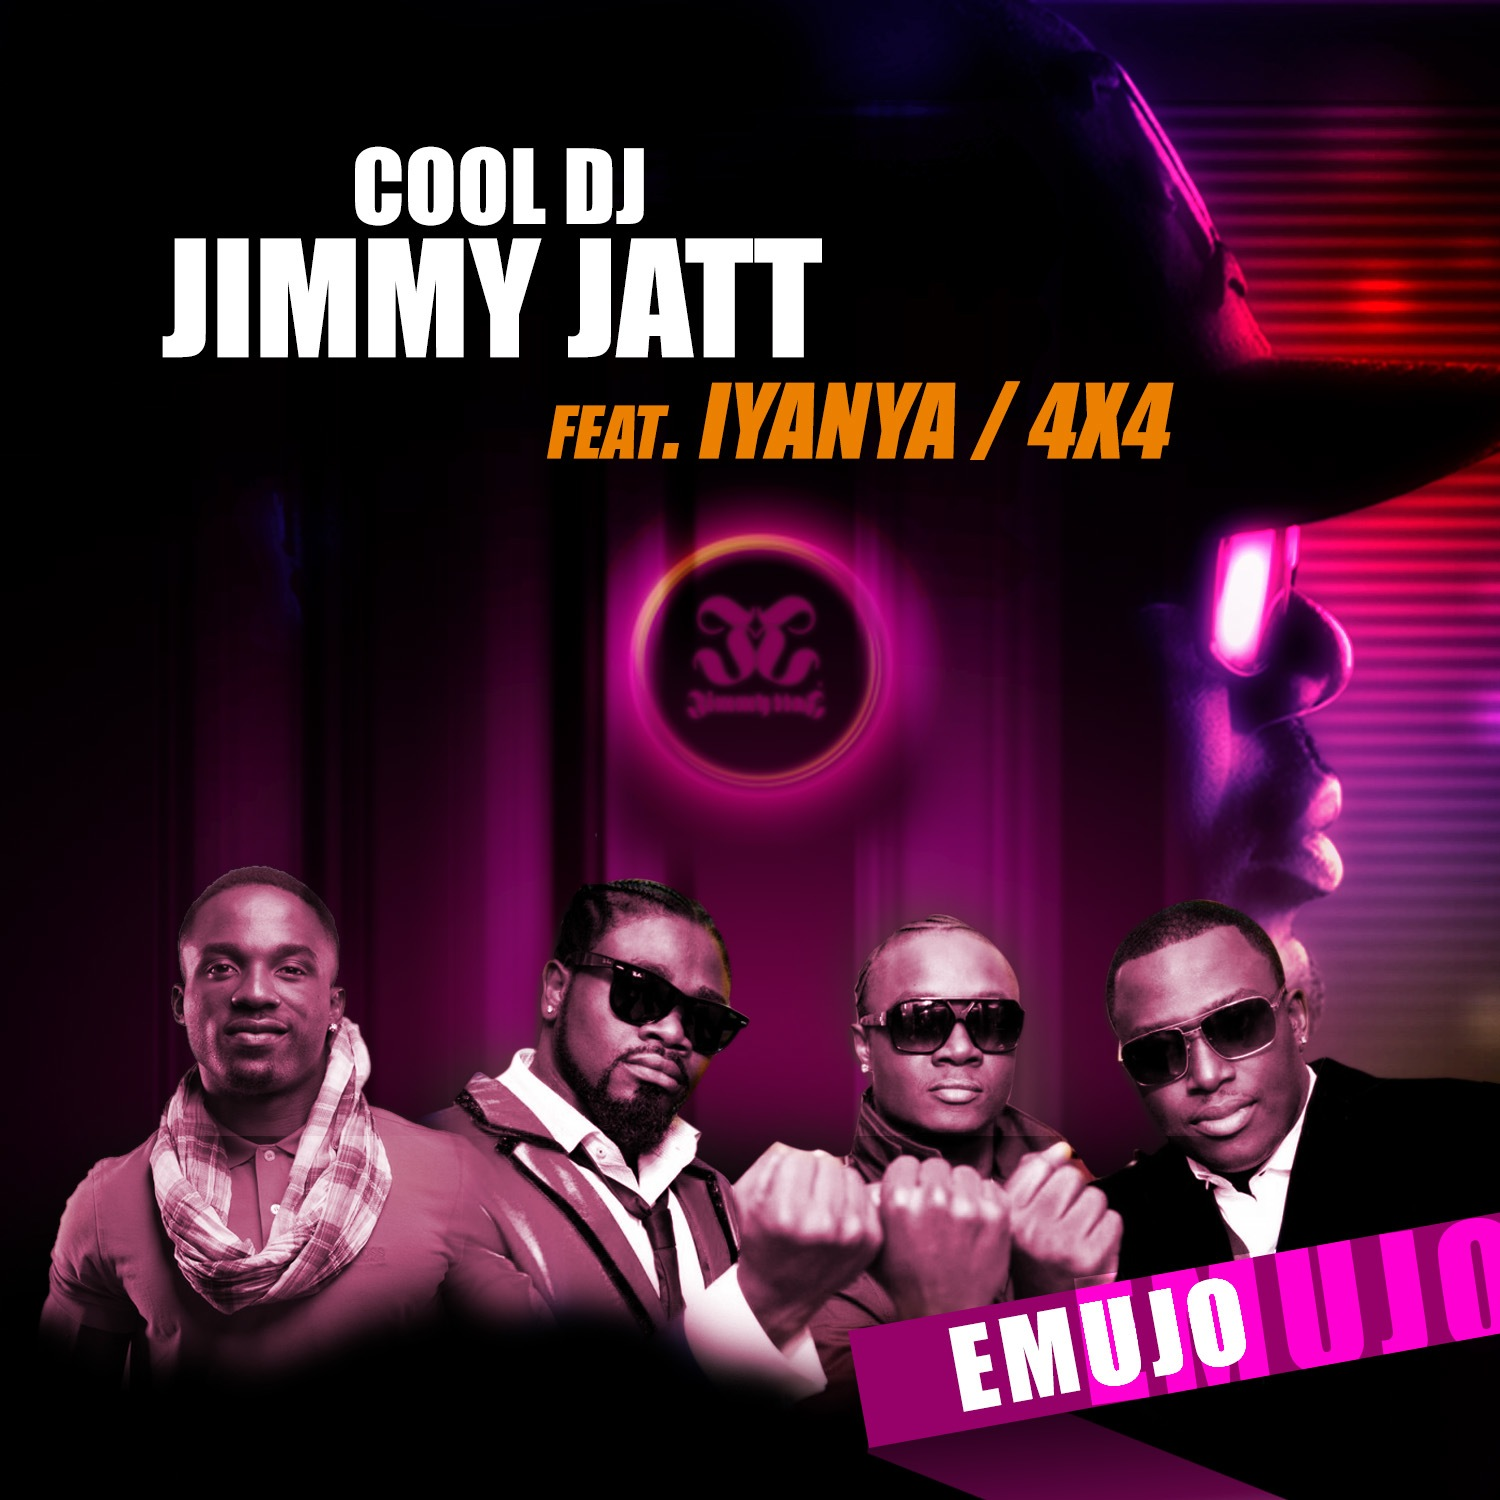 Dj Jimmy Jatt feat. Iyanya & 4&4